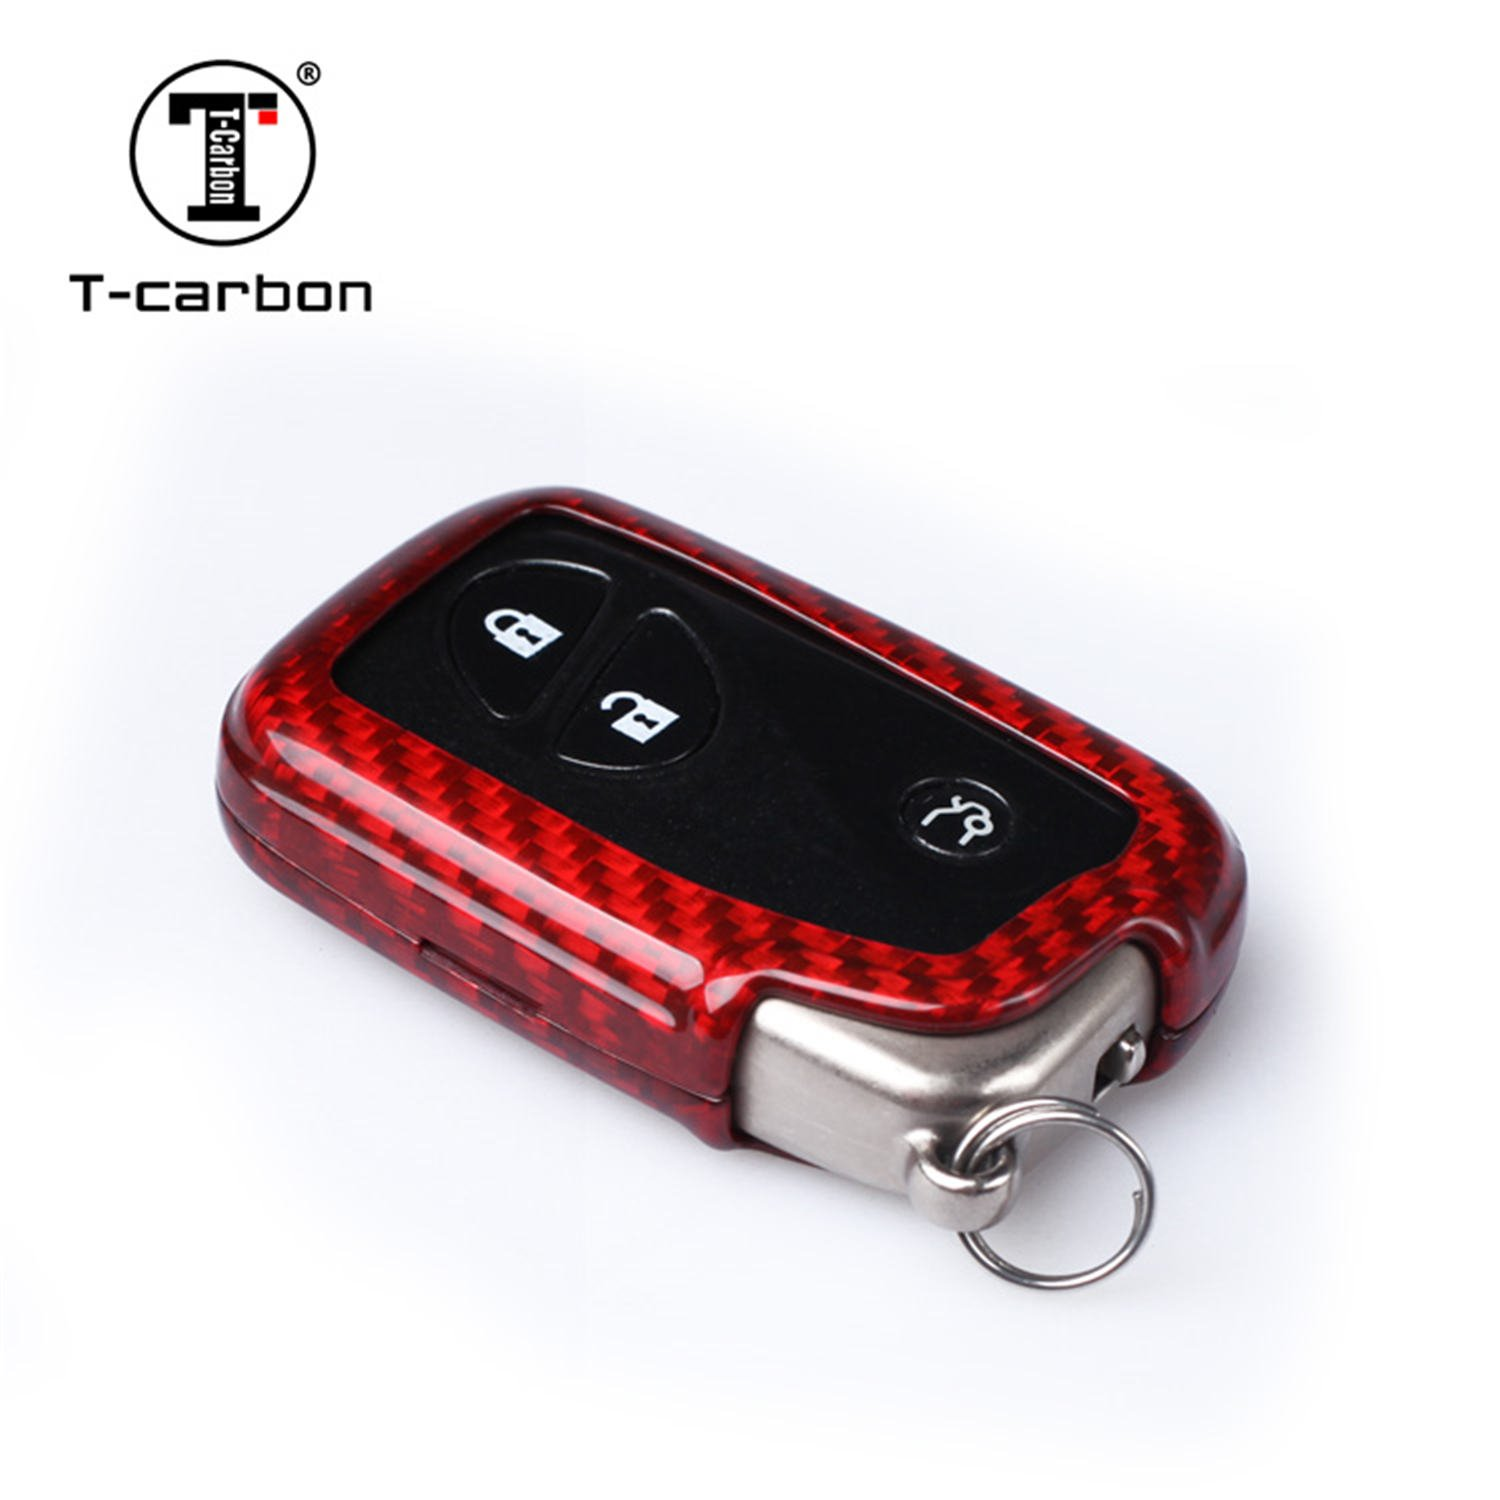 Carbon Fiber Key Fob Cover for Lexus Key Fob Remote Key, Fits Lexus GX Lexus CT Lexus SC Lexus LS Smart Keyless Start Stop Engine Car Key, Light Weight Glossy Finish Key Fob Protection Case - Red